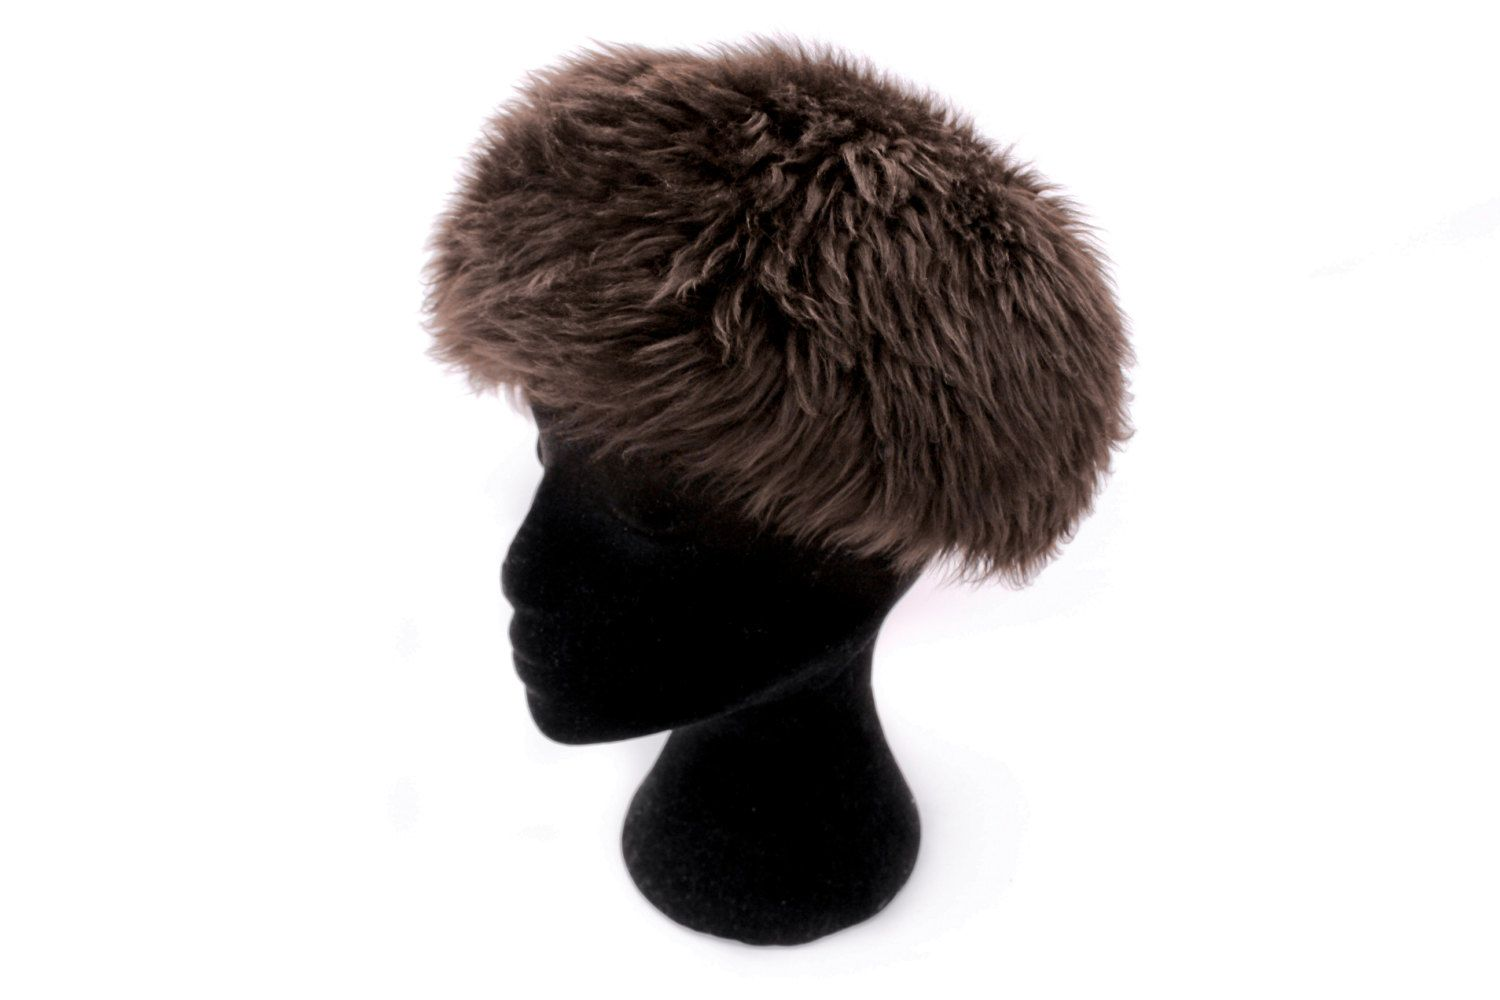 Vintage 70s Winter Hat • Sheepskin Hat • Shearling Hat • Real Fur Hat •  Shaggy Espresso Brown Hat • Russian Cossack Style • Womens Hats by Venelle  on Etsy 200a5d8c6d24